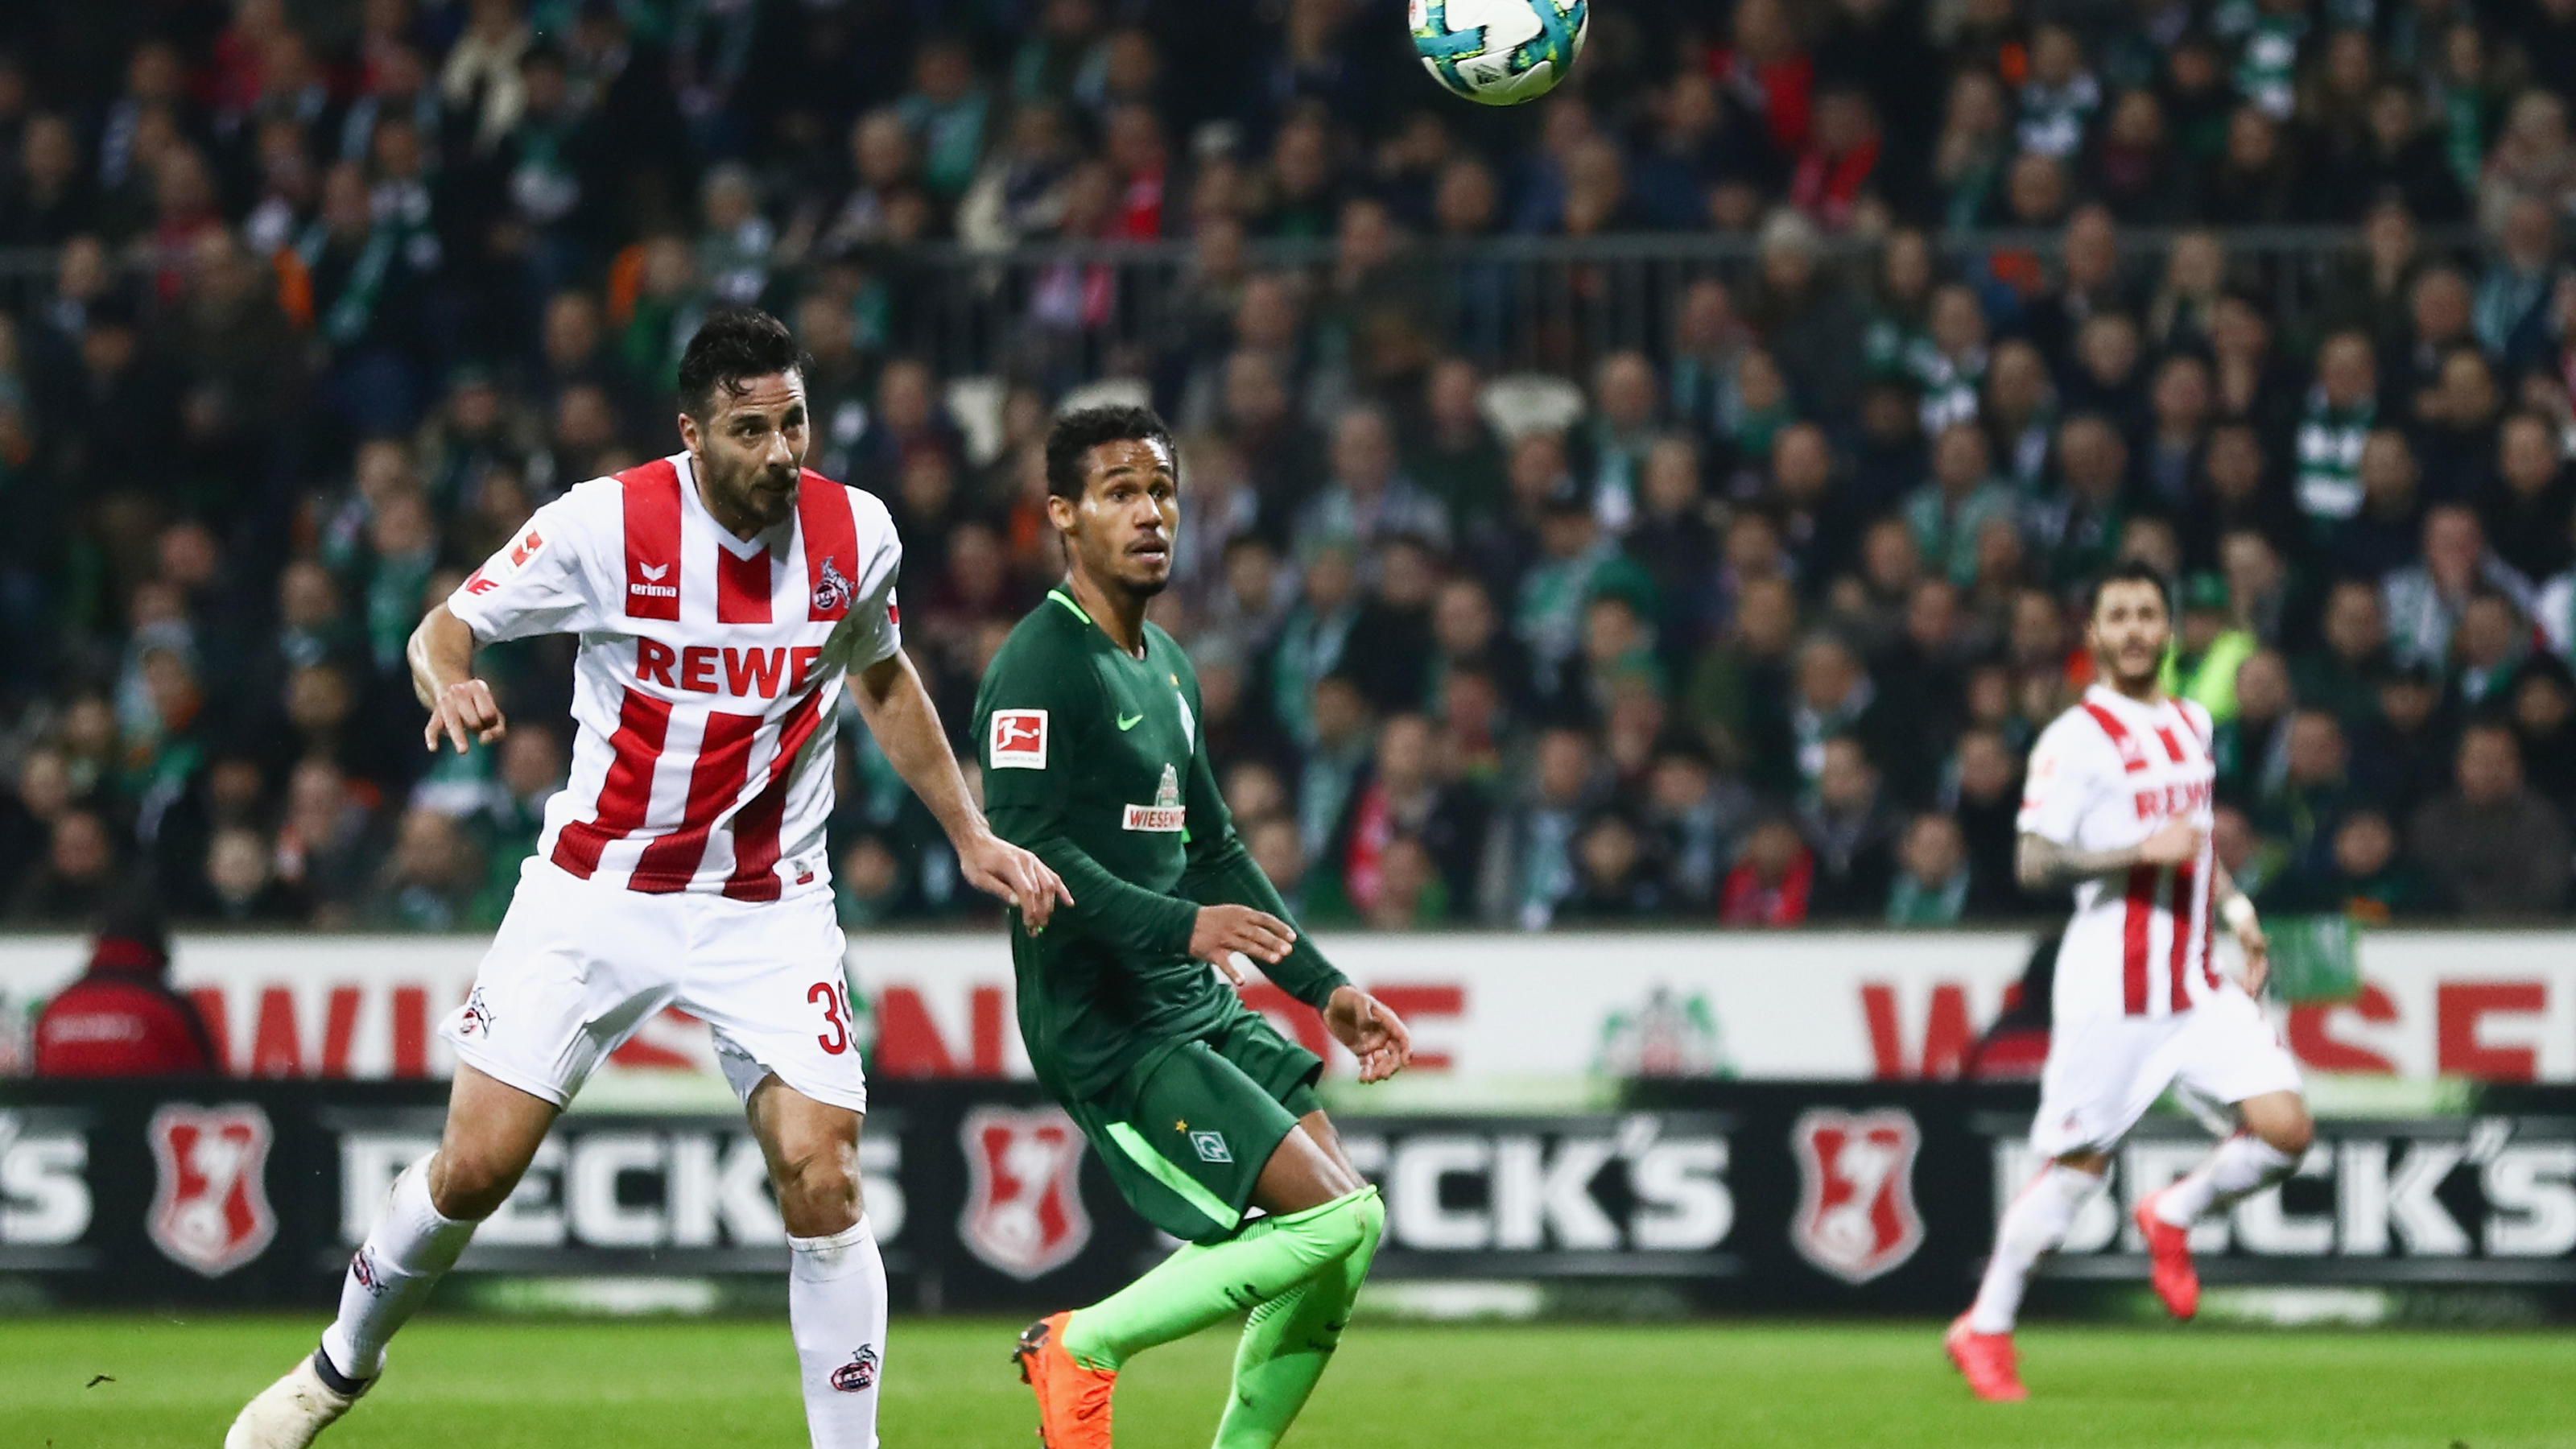 BREMEN, GERMANY - MARCH 12: Claudio Pizarro of Koeln misses a chance to score against Theodor Gebre Selassie of Bremen during the Bundesliga match between SV Werder Bremen and 1. FC Koeln at Weserstadion on March 12, 2018 in Bremen, Germany.  (Photo